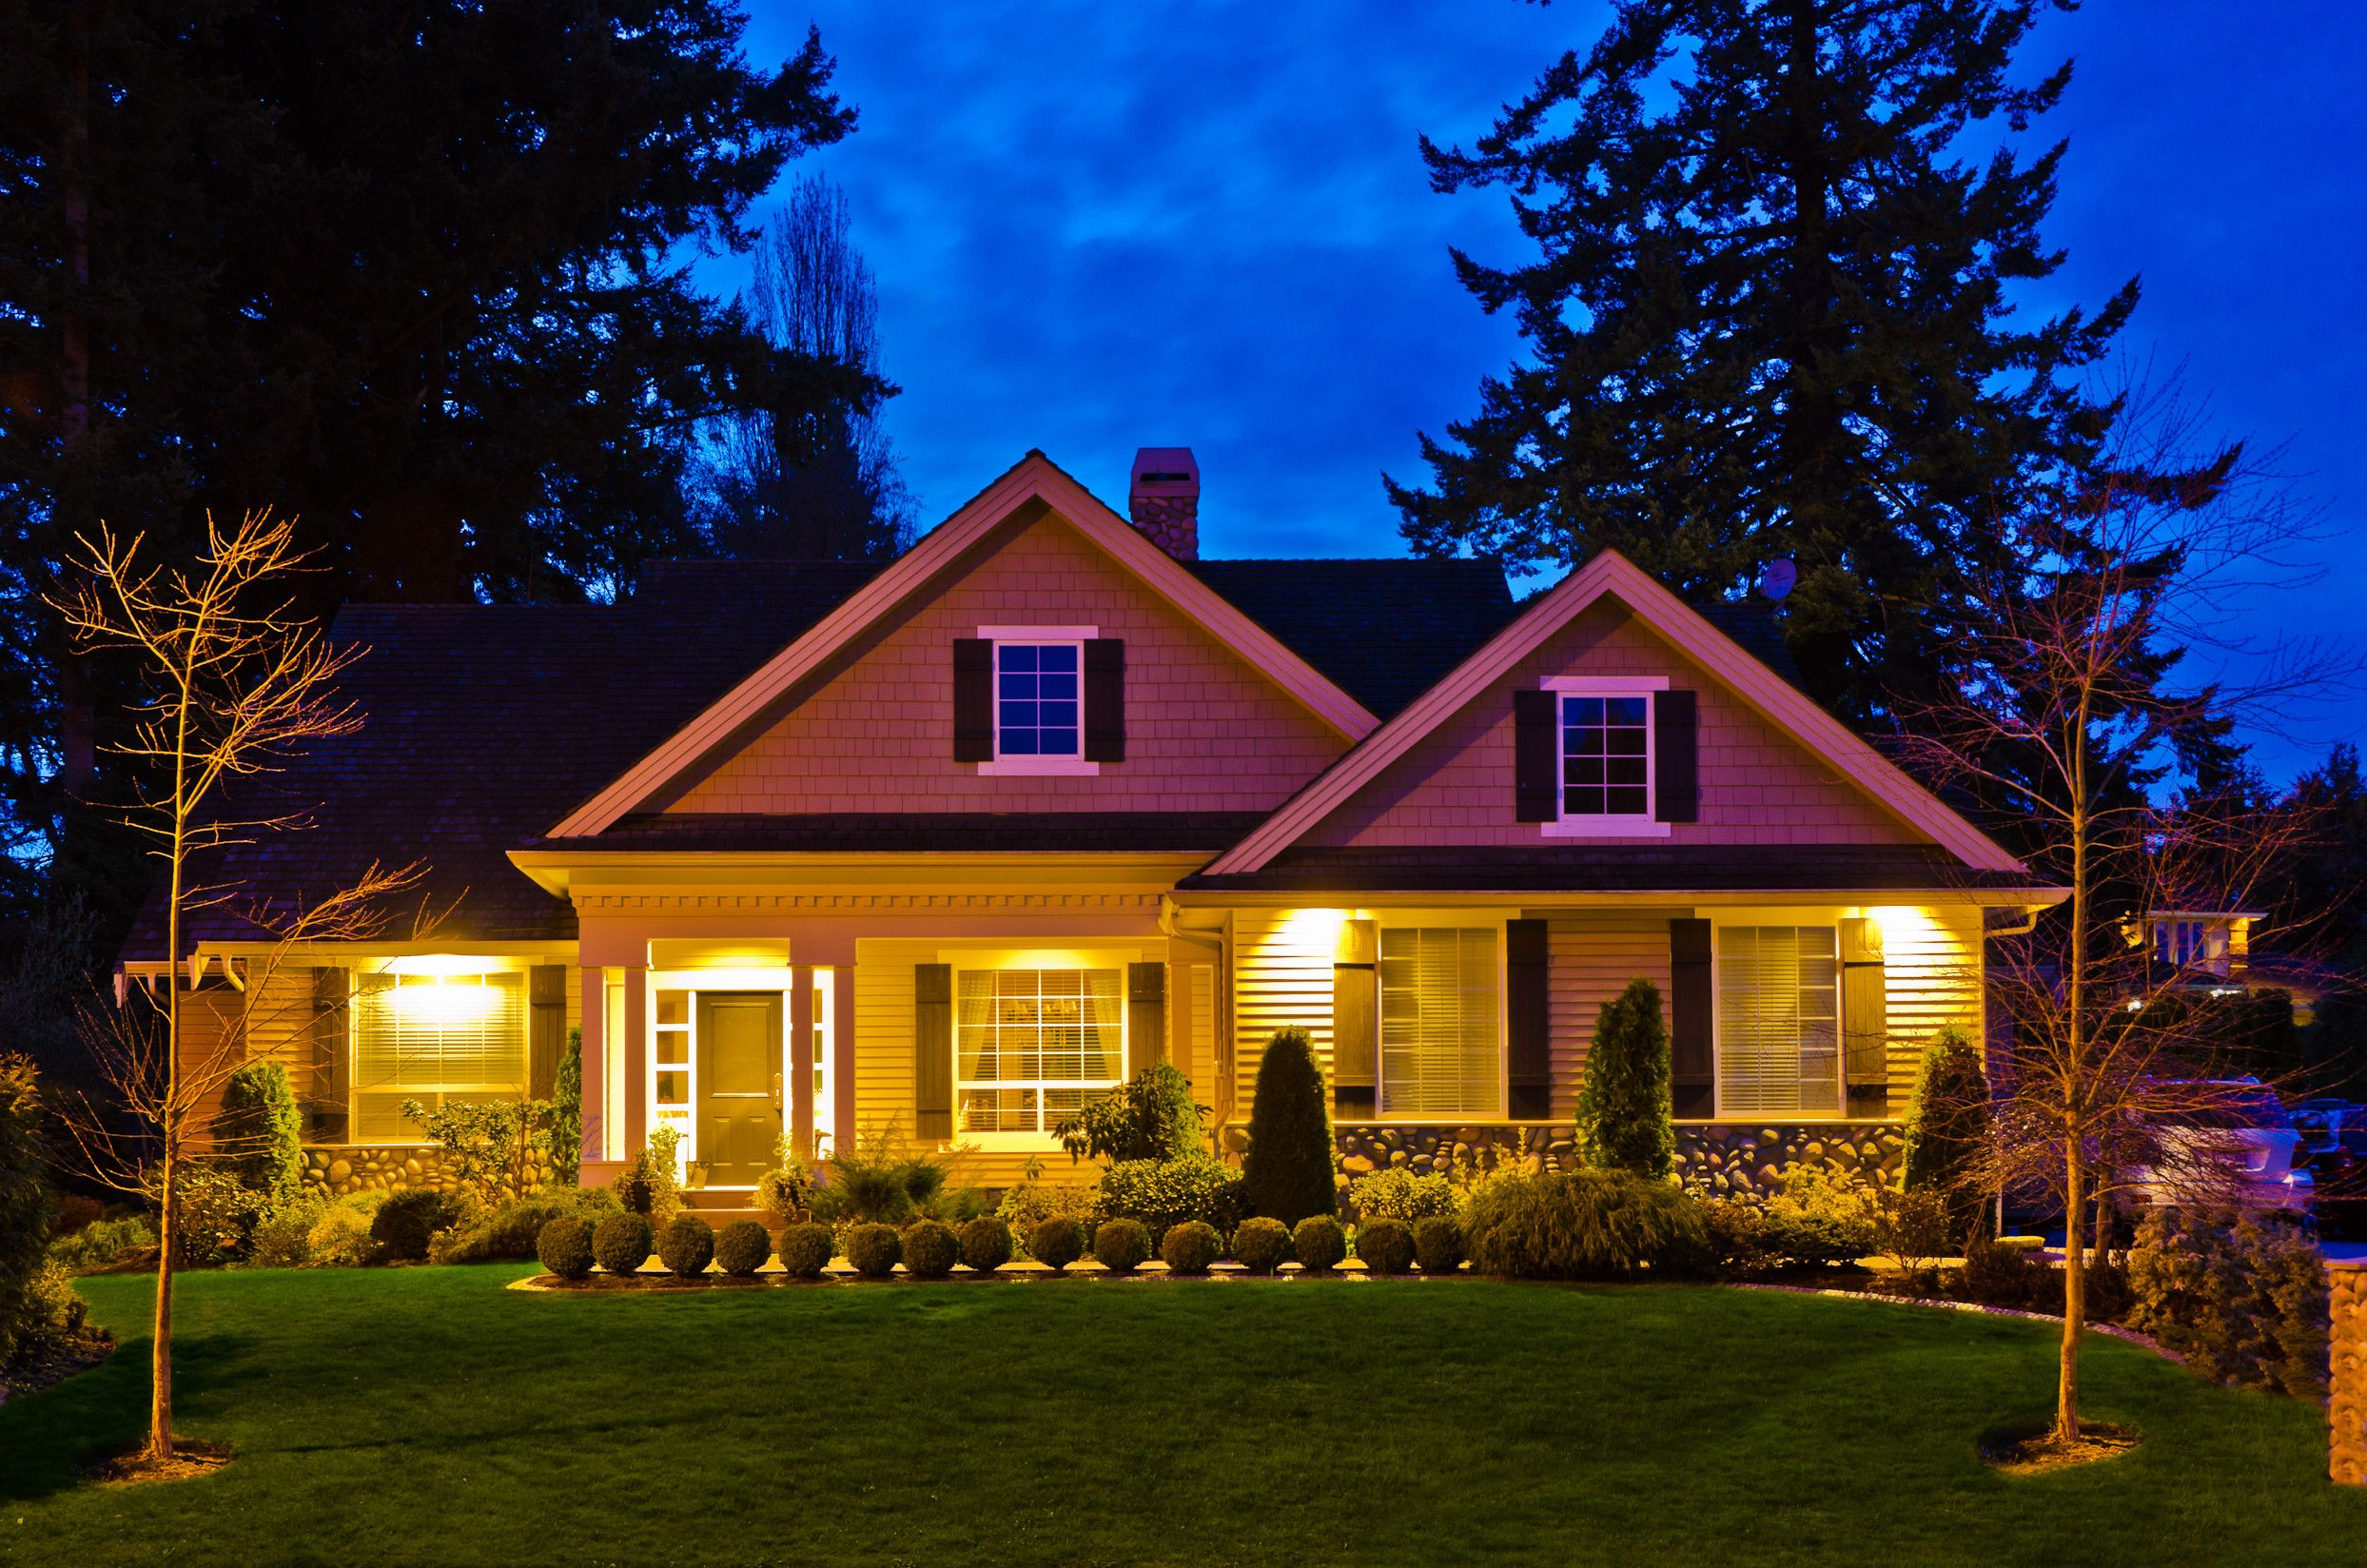 9 Star Home Designs Part - 42: 9 Reasons To Visit A Home At Night Before Buying